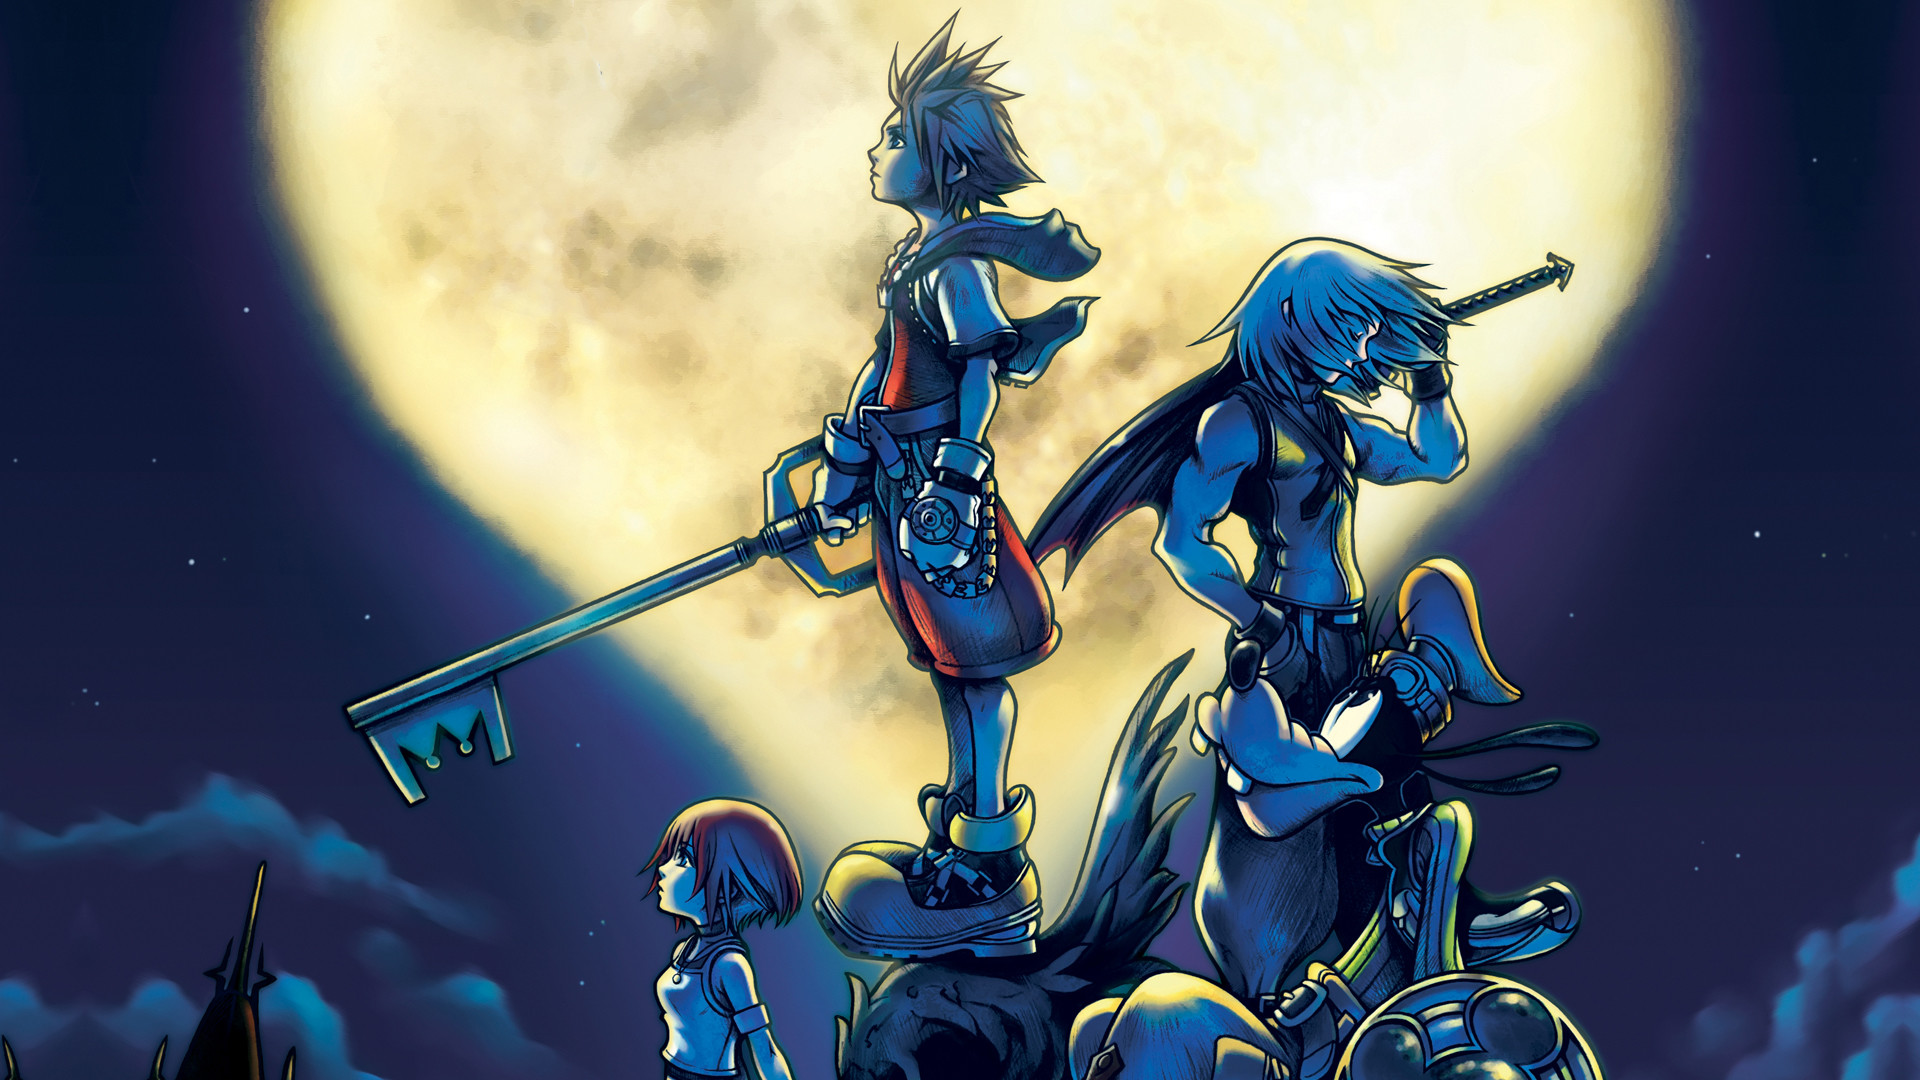 1920x1080 Kingdom Hearts Wallpaper